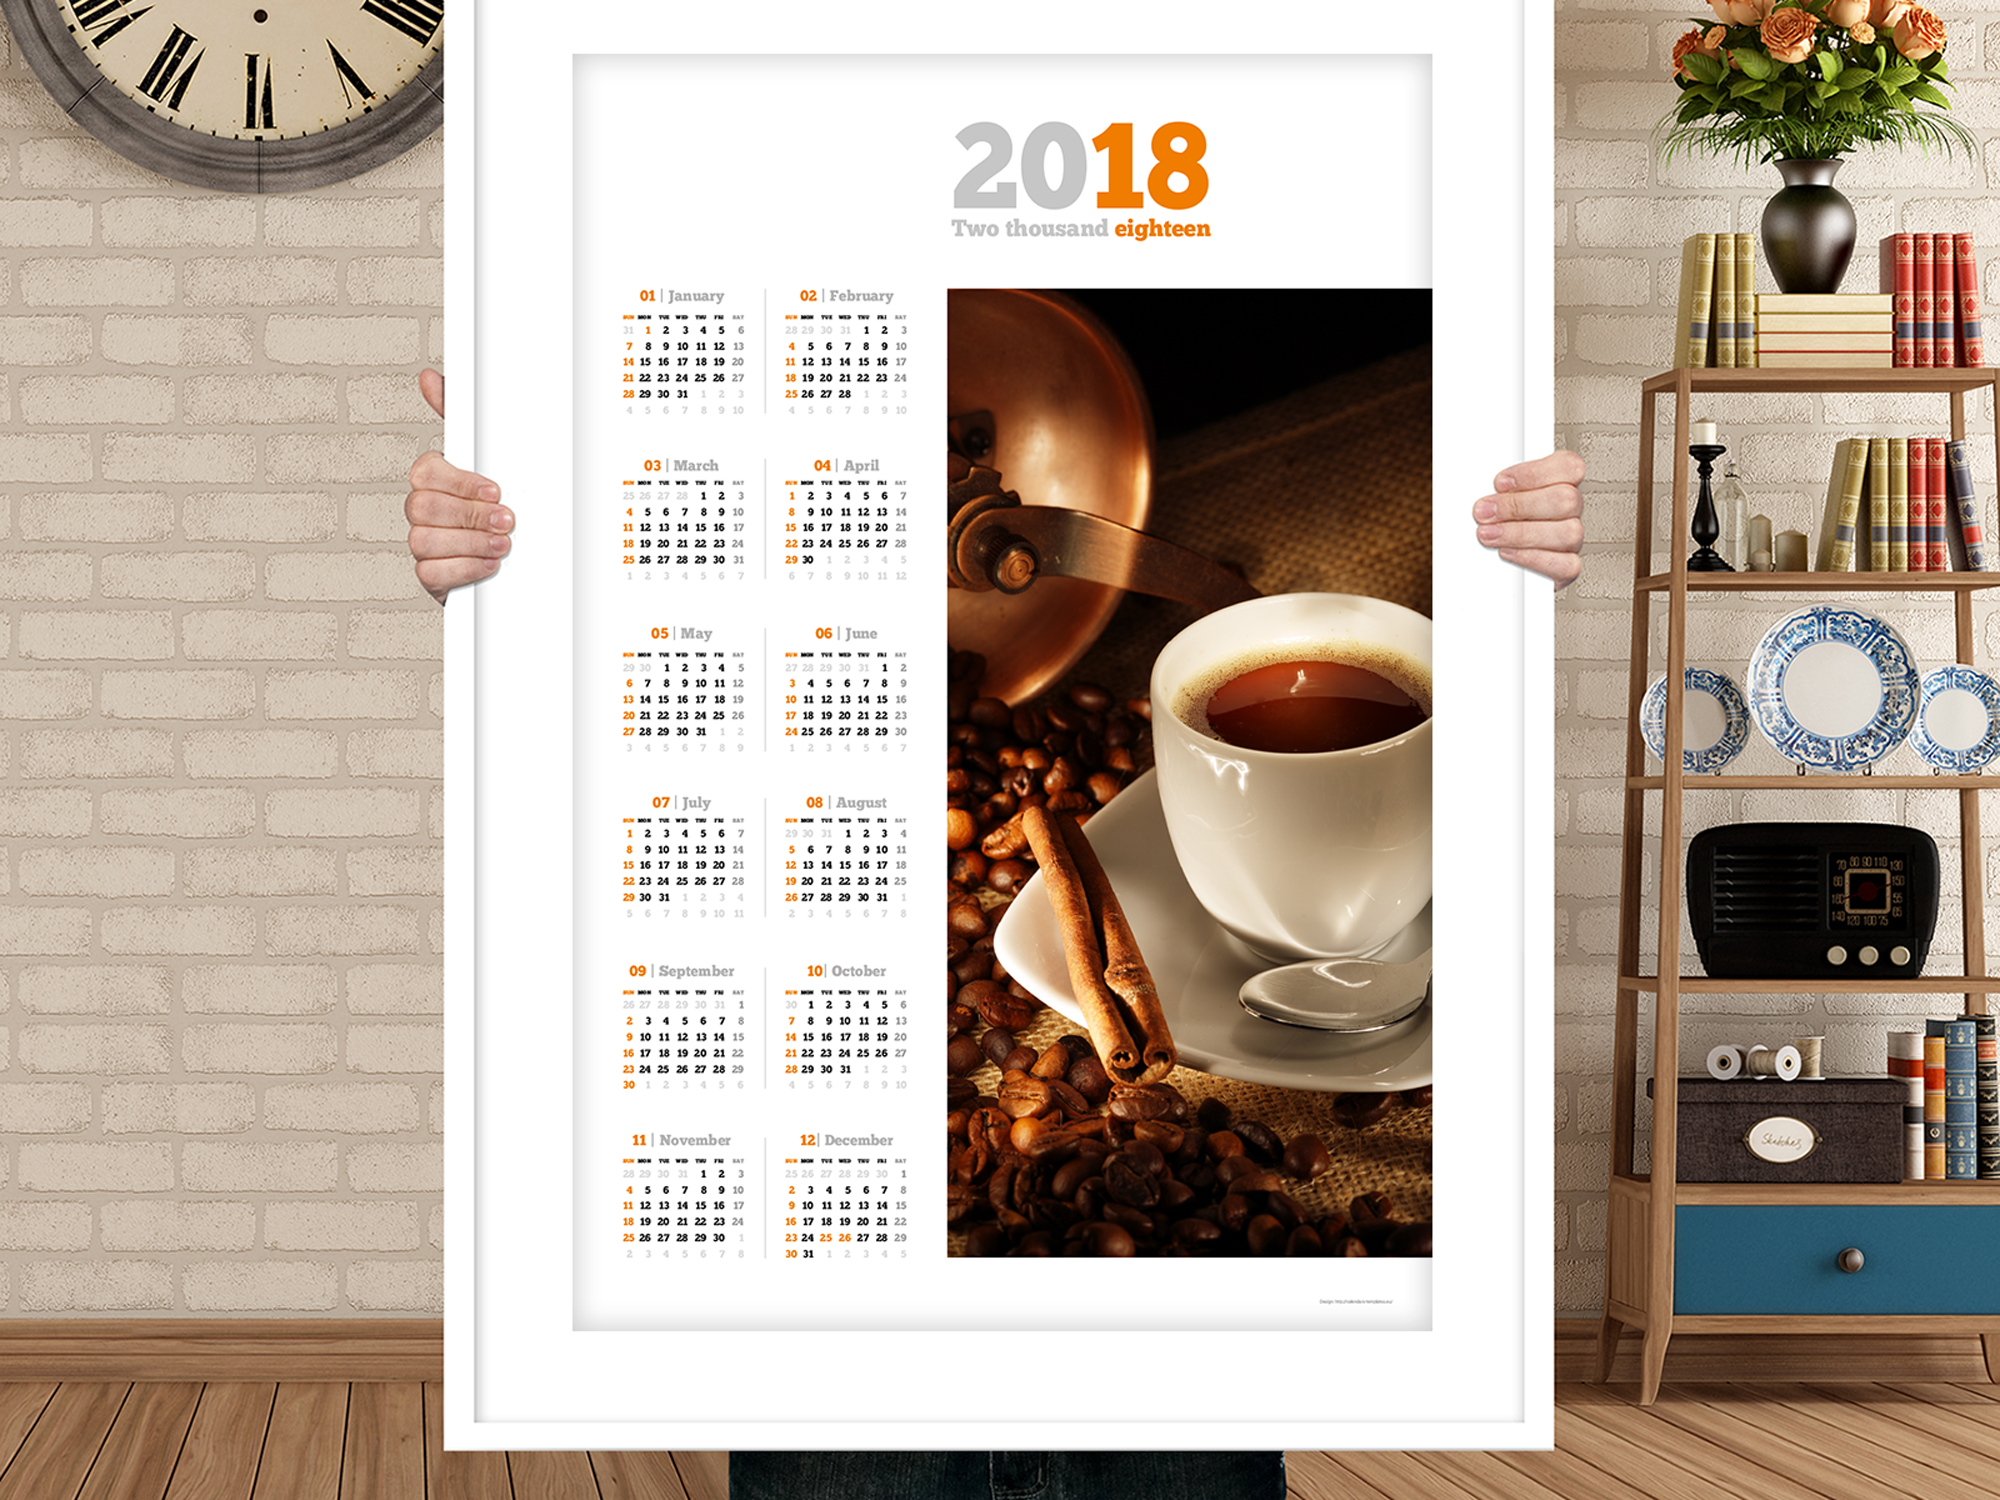 Design Your Own Yearly Calendar Custom Calendars Zazzle 2018 Yearly Calendar Template With Large Image Pdf Format